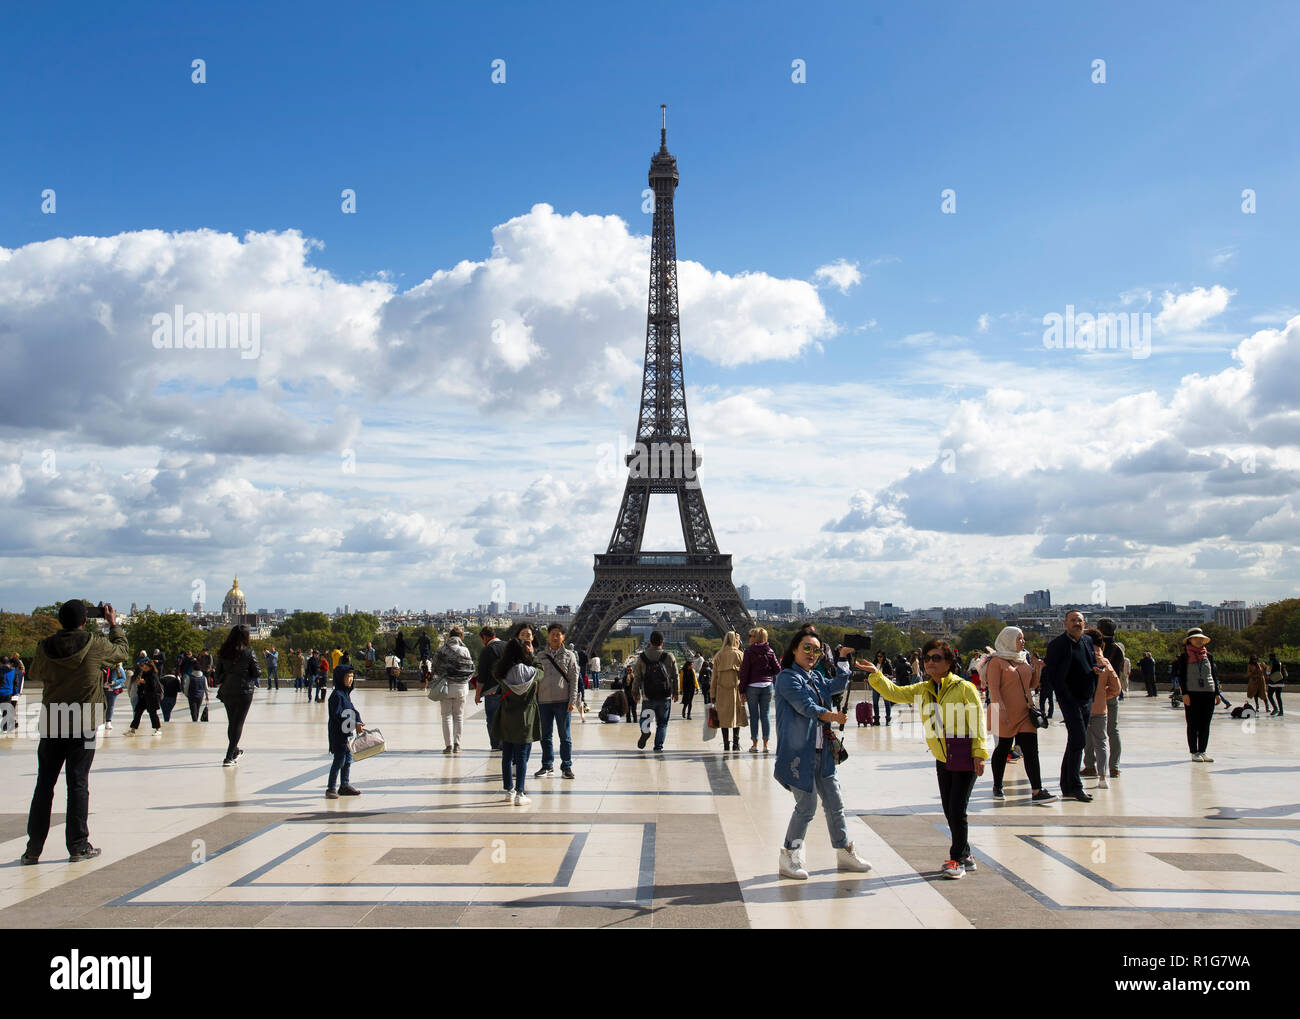 Tourists in the Place du Trocadéro overlooking the Eiffel Tower, Paris, France - Stock Image